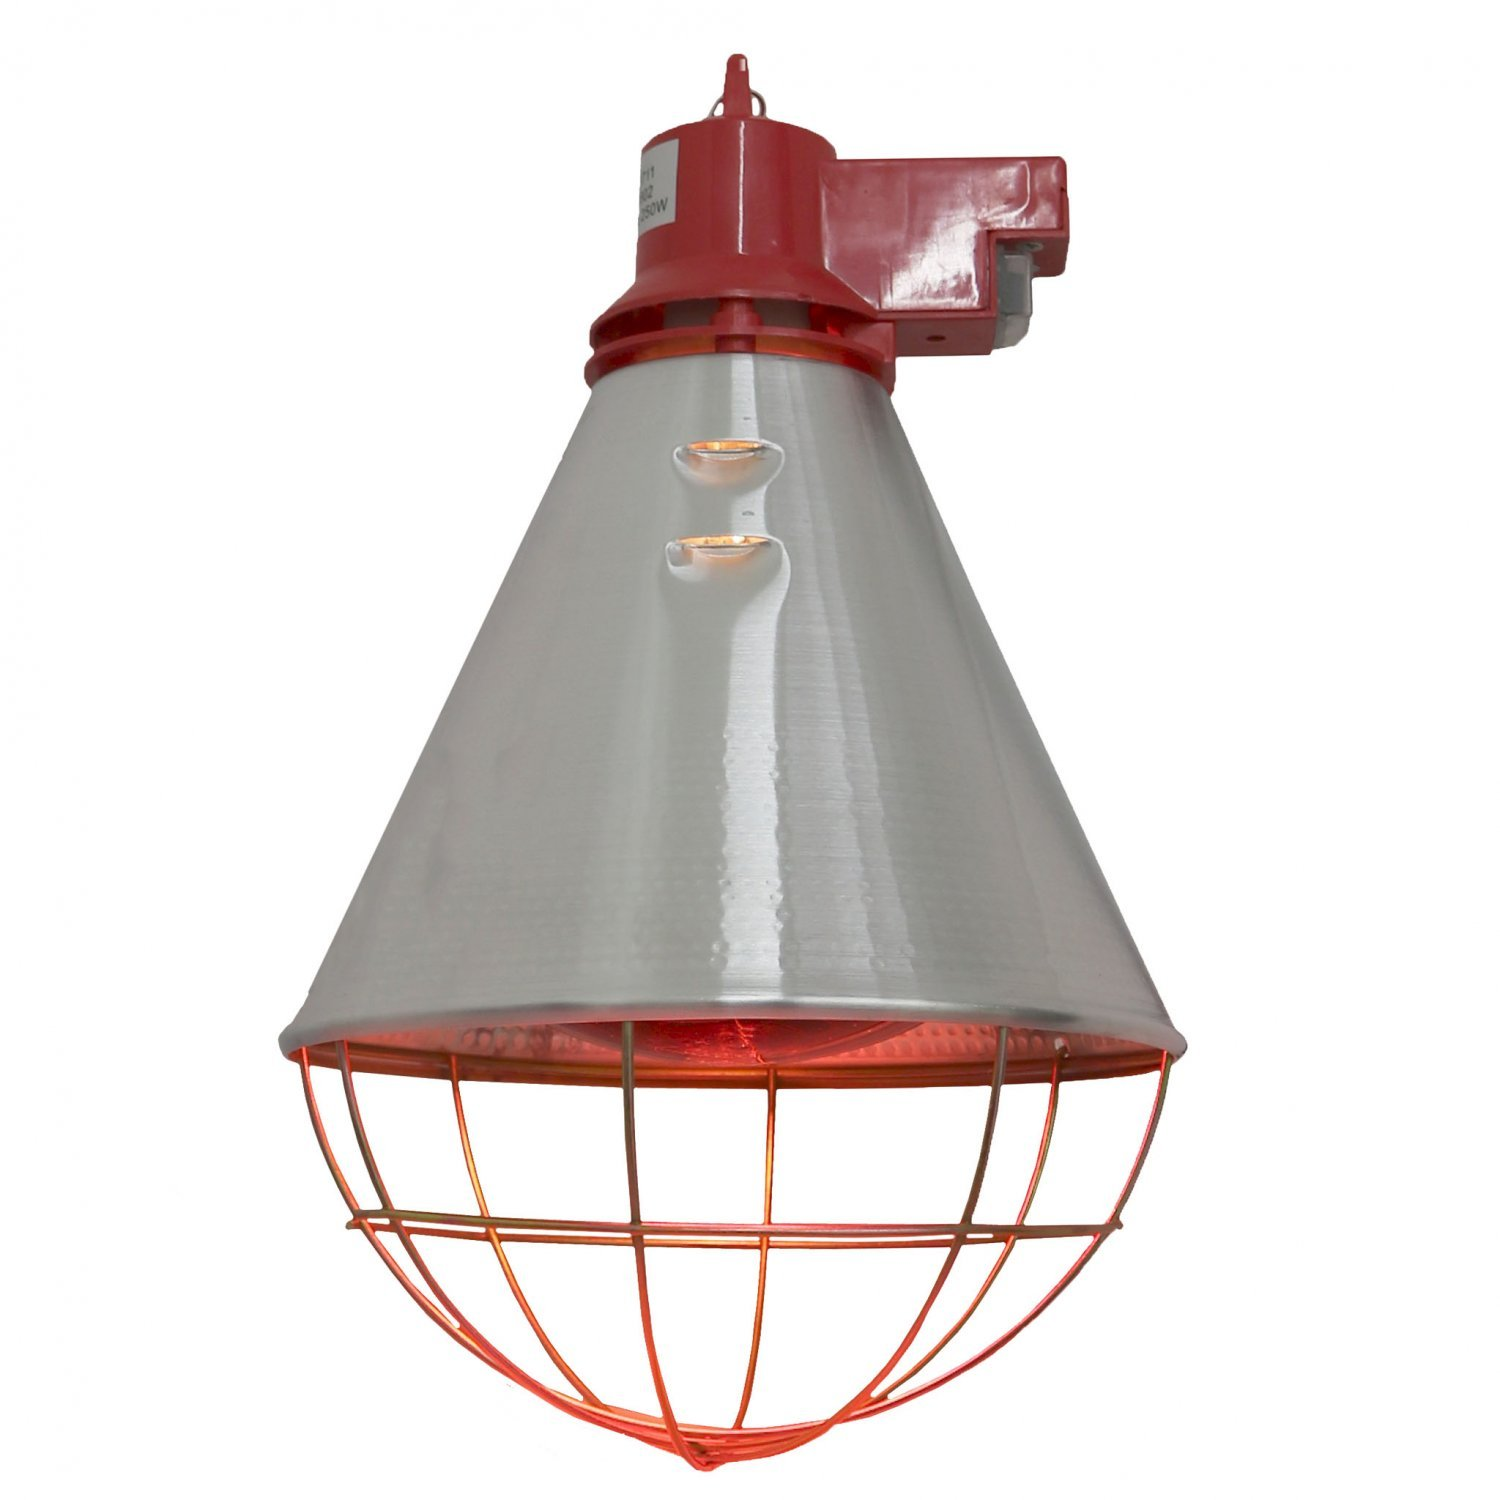 Poultry Heat Incubator Lamp 175w W Red Bulb For Chicks Puppies 163 22 99 Oypla Stocking The